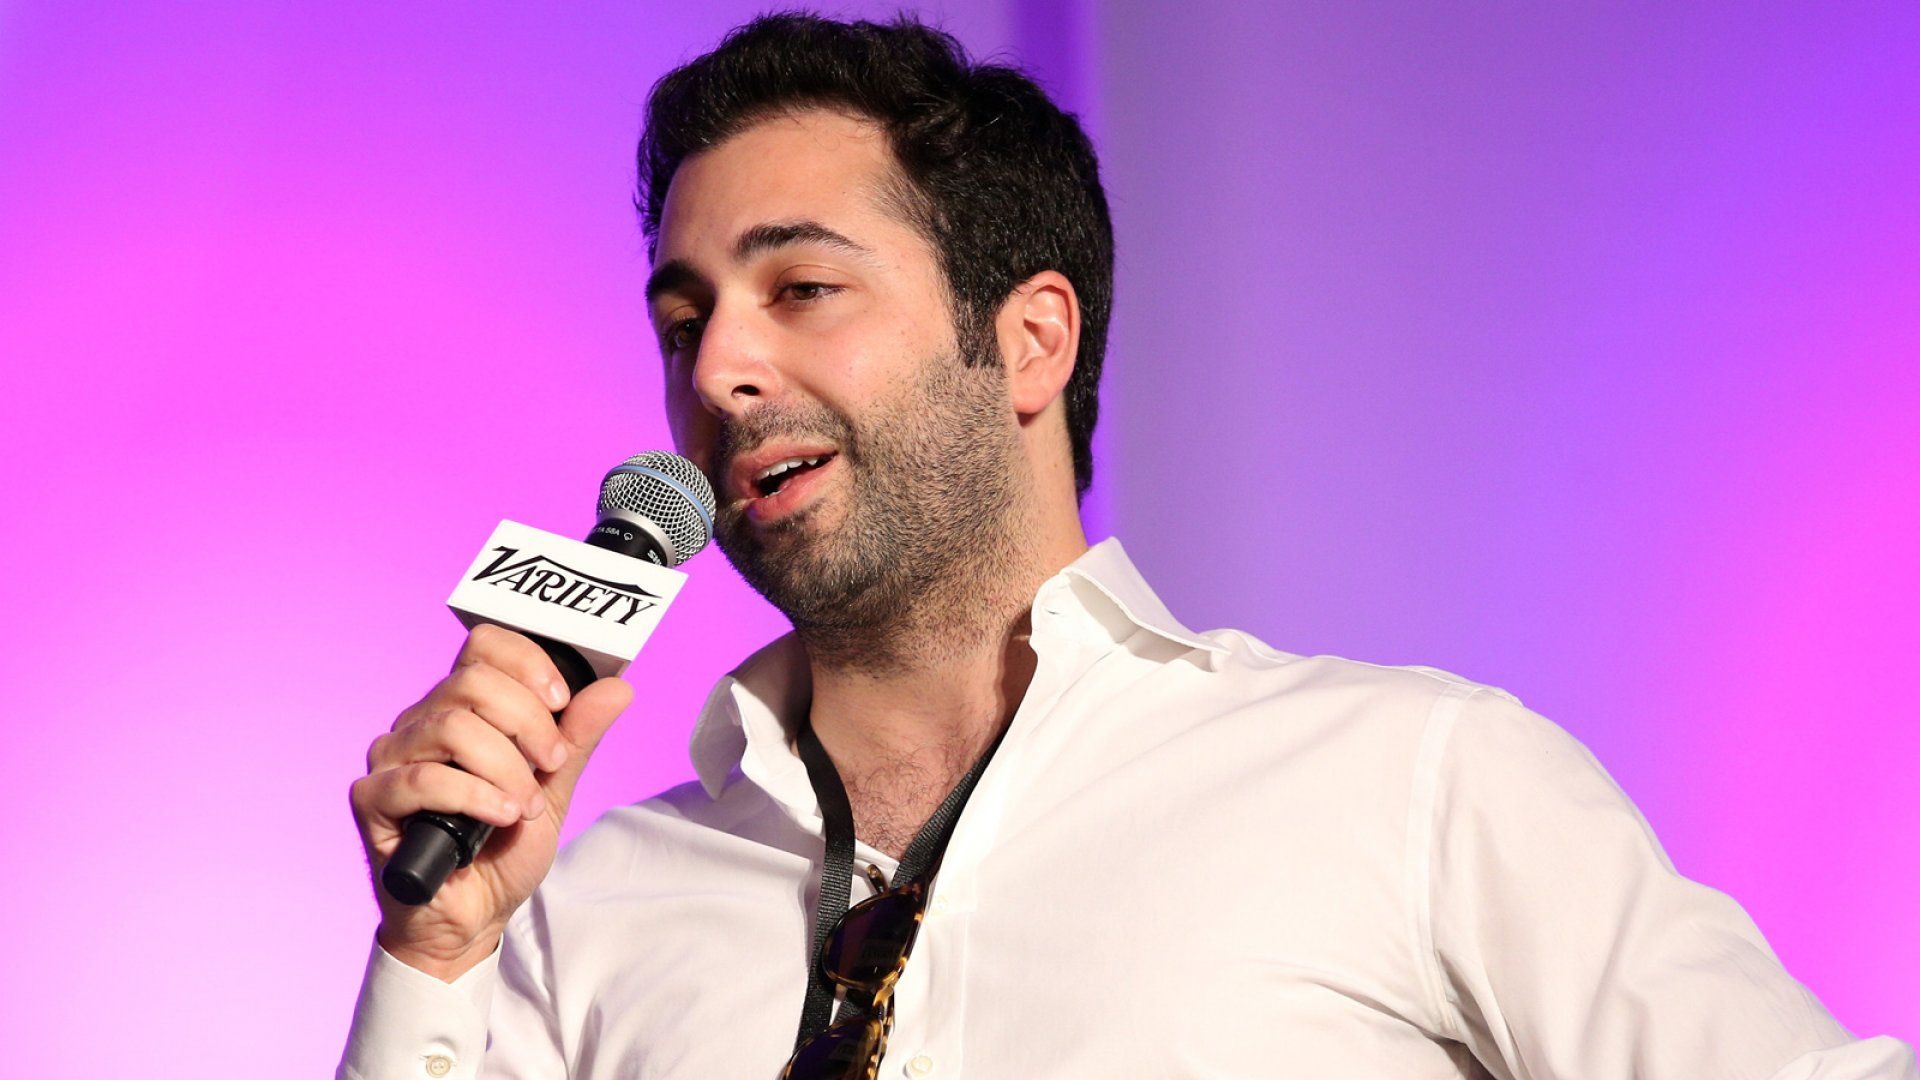 Ousted Tinder Co-Founder Uses Nasty Texts as Evidence in Sexual Harassment Suit